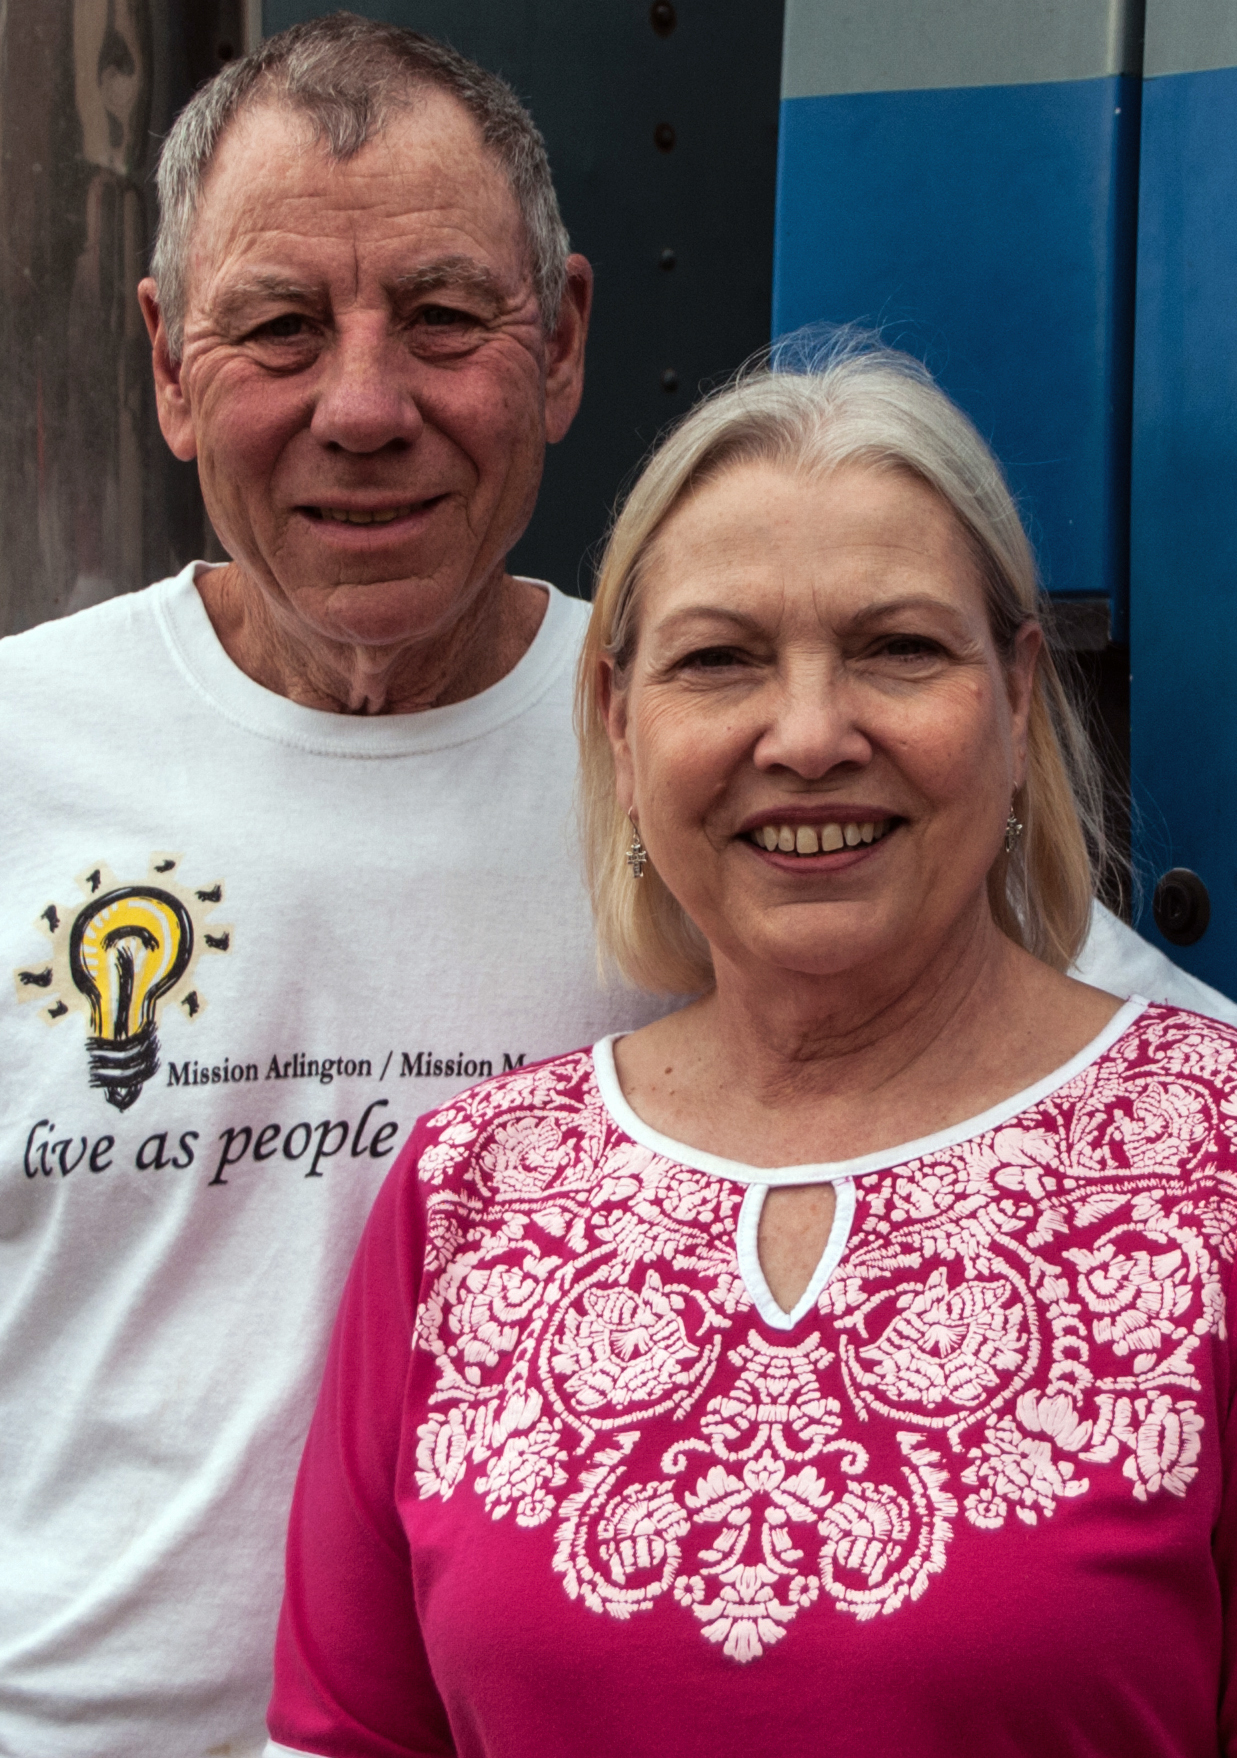 Tommy and Noeleen have been married for 15 years.